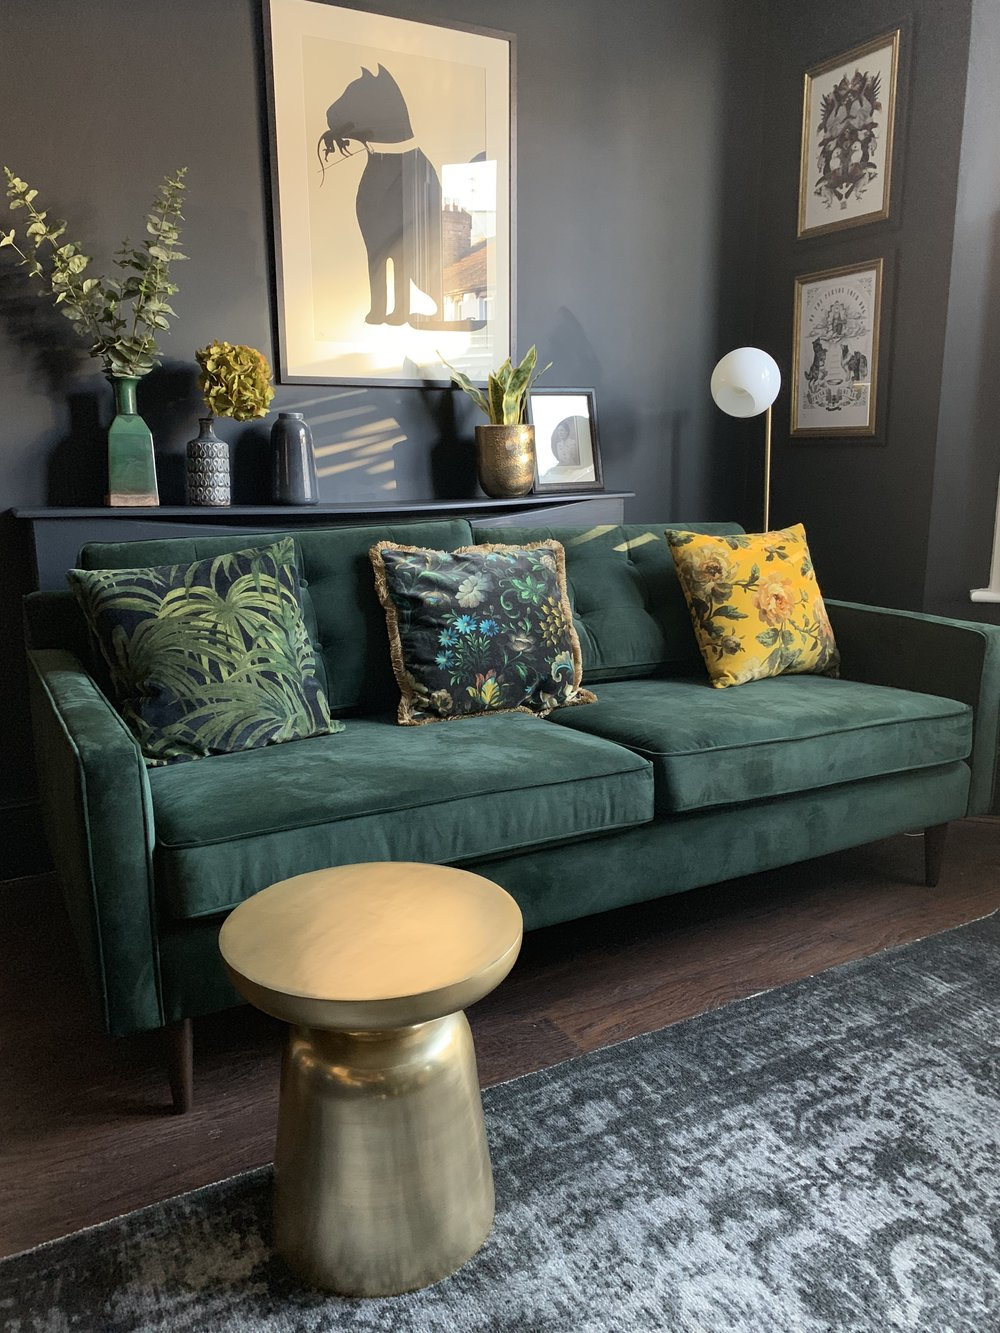 Drake Green velvet sofa   £999,   West Elm    ;    Staggered glass floor lamp    £199,    West Elm   ;    Martini side table in brass    £159,    West Elm   ;    Distressed Arabesque Wool Rug - Steel   £449, From   West Elm  .